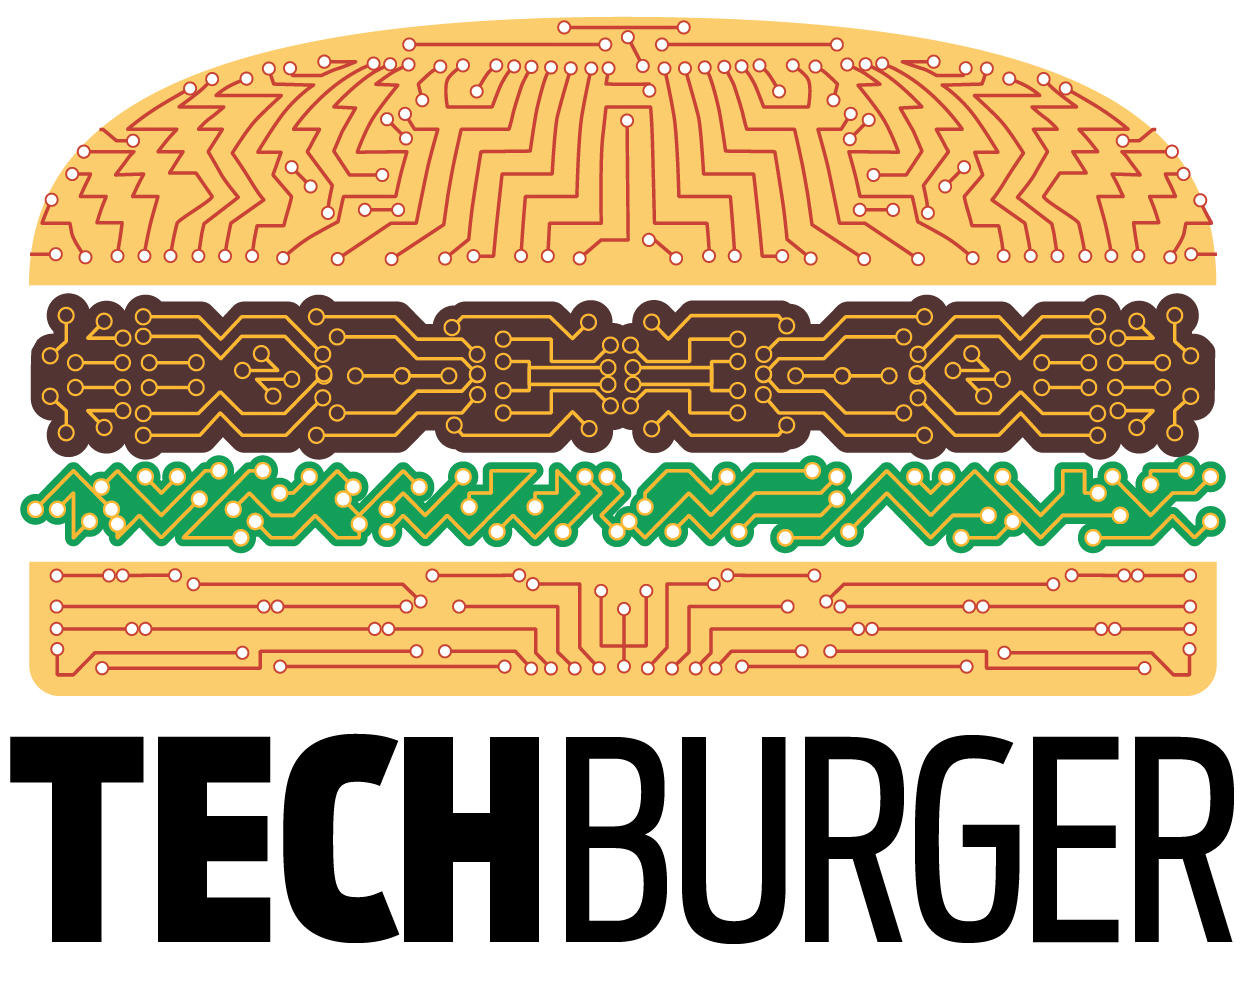 What's going on here: The TechBurger FAQ